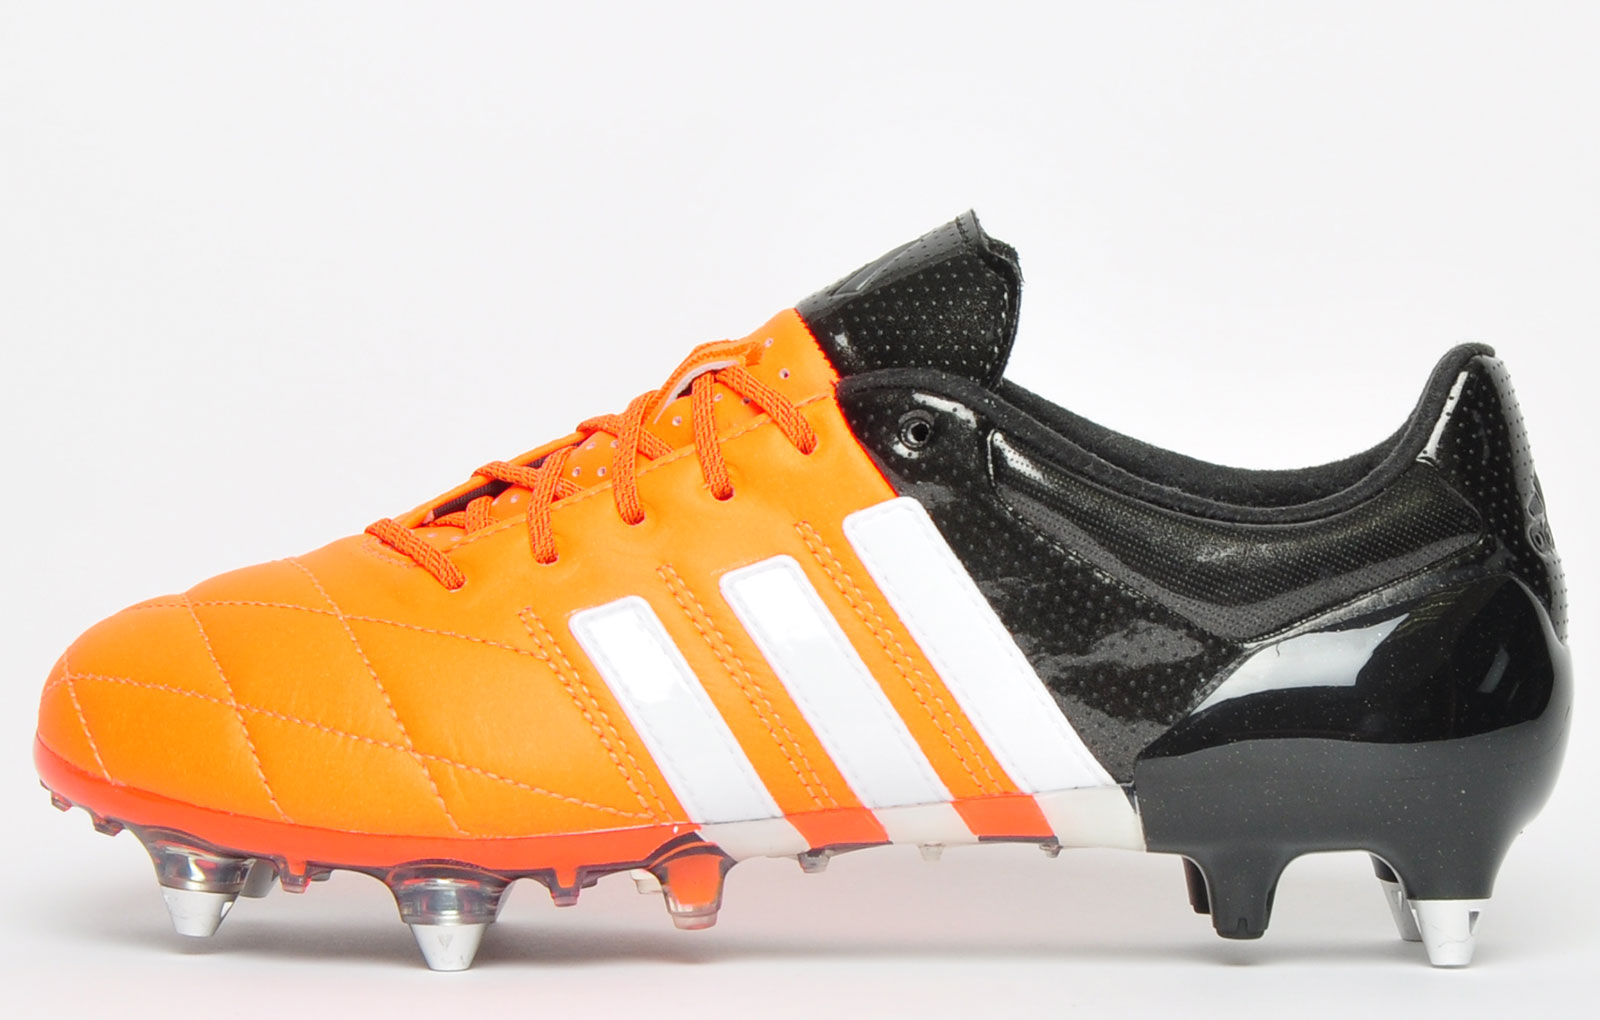 Adidas Ace 15.1 SG Leather Pro Mens -